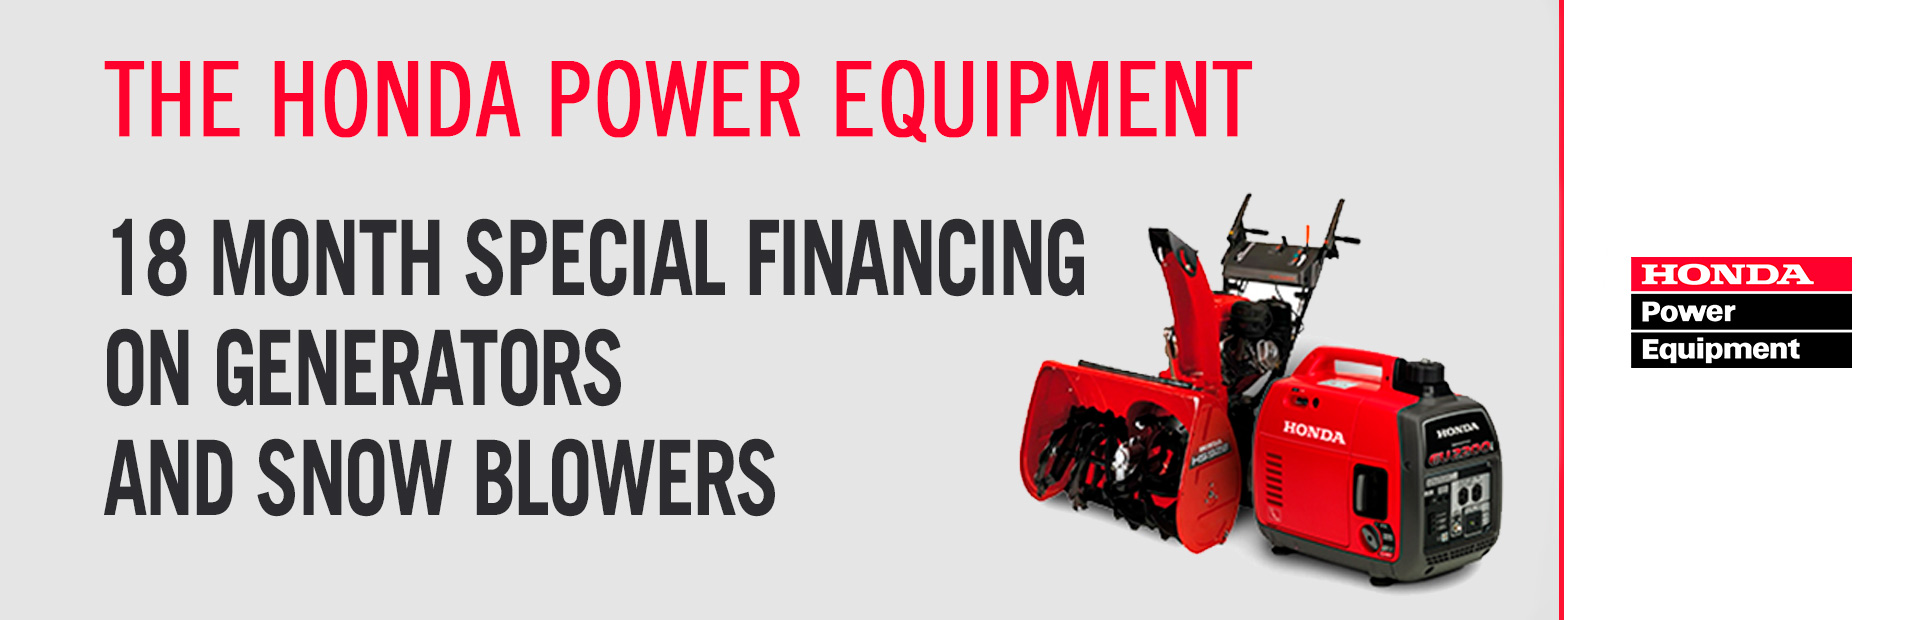 Honda Power Equipment: 18 Month Special Financing on Generators and Snow